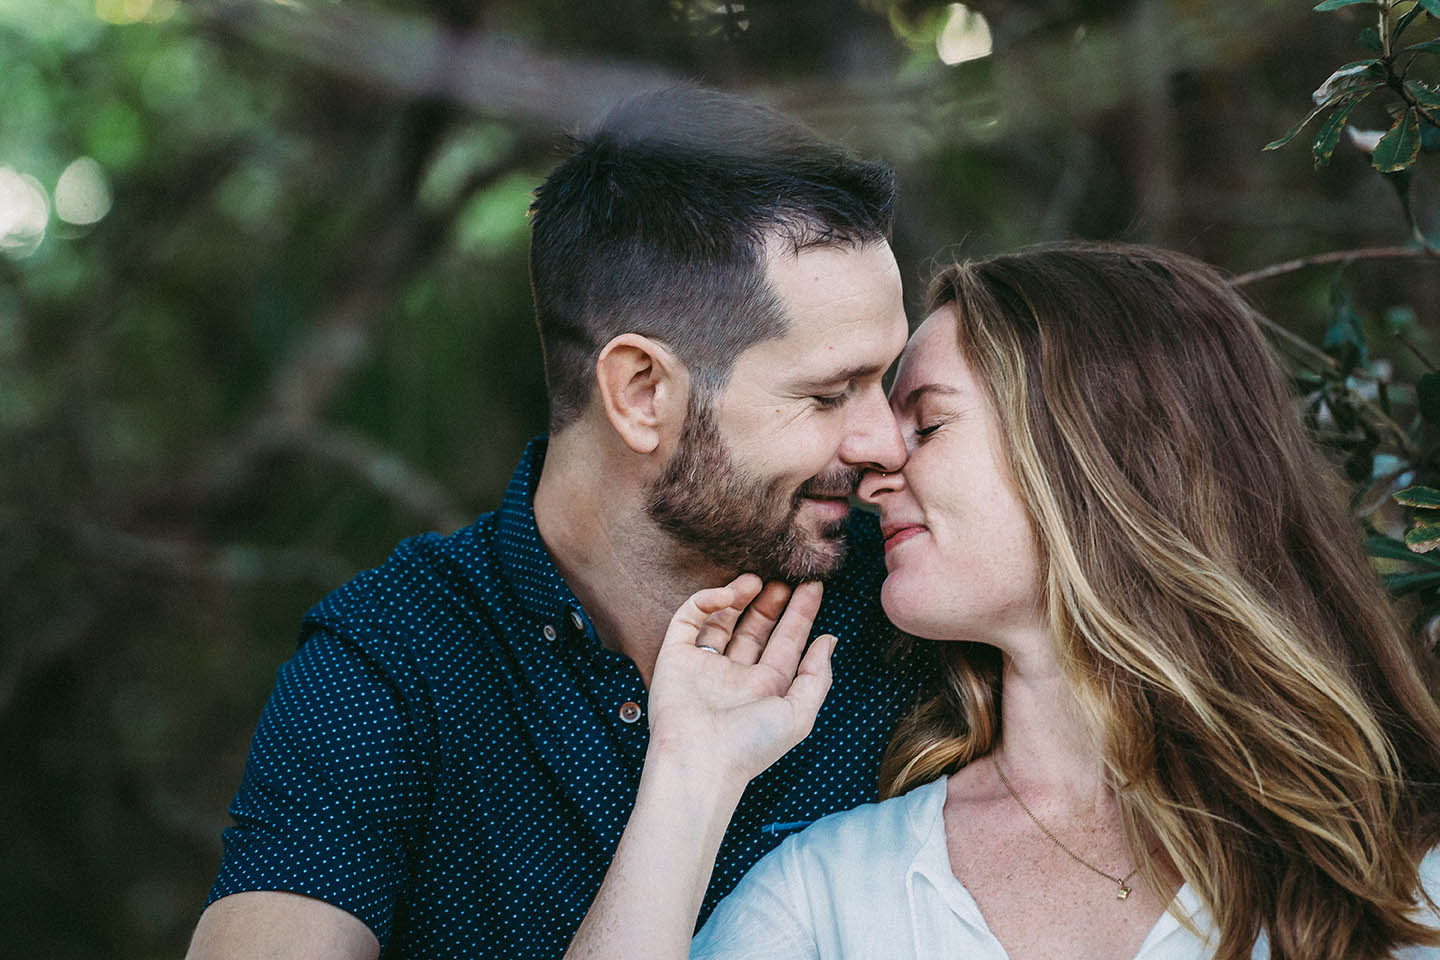 Engagement Photography - couple embrace in tree